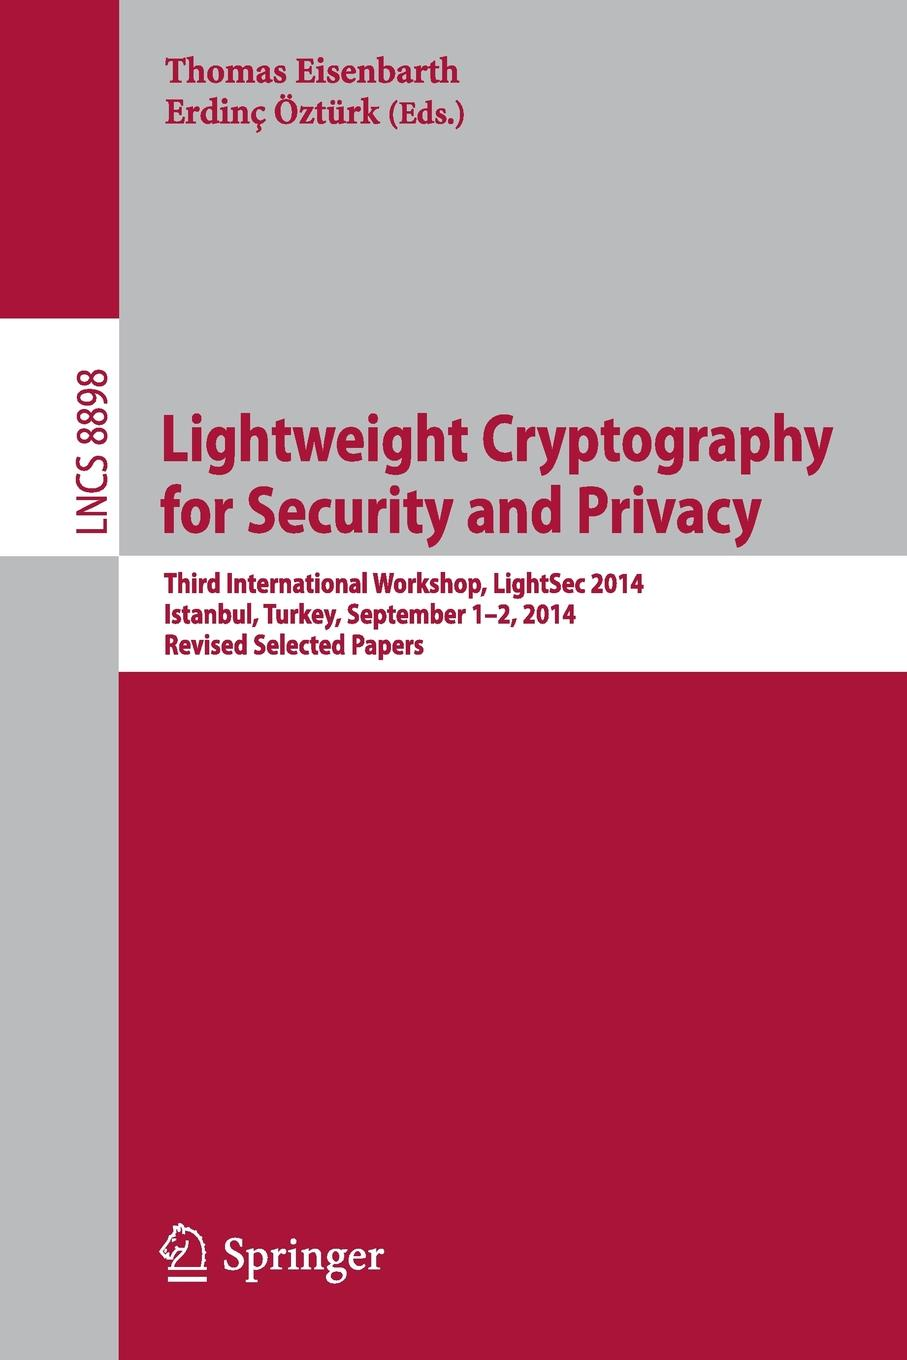 Lightweight Cryptography for Security and Privacy. Third International Workshop, LightSec 2014, Istanbul, Turkey, September 1-2, 2014, Revised Selected Papers cyber security and privacy third cyber security and privacy eu forum csp forum 2014 athens greece may 21 22 2014 revised selected papers